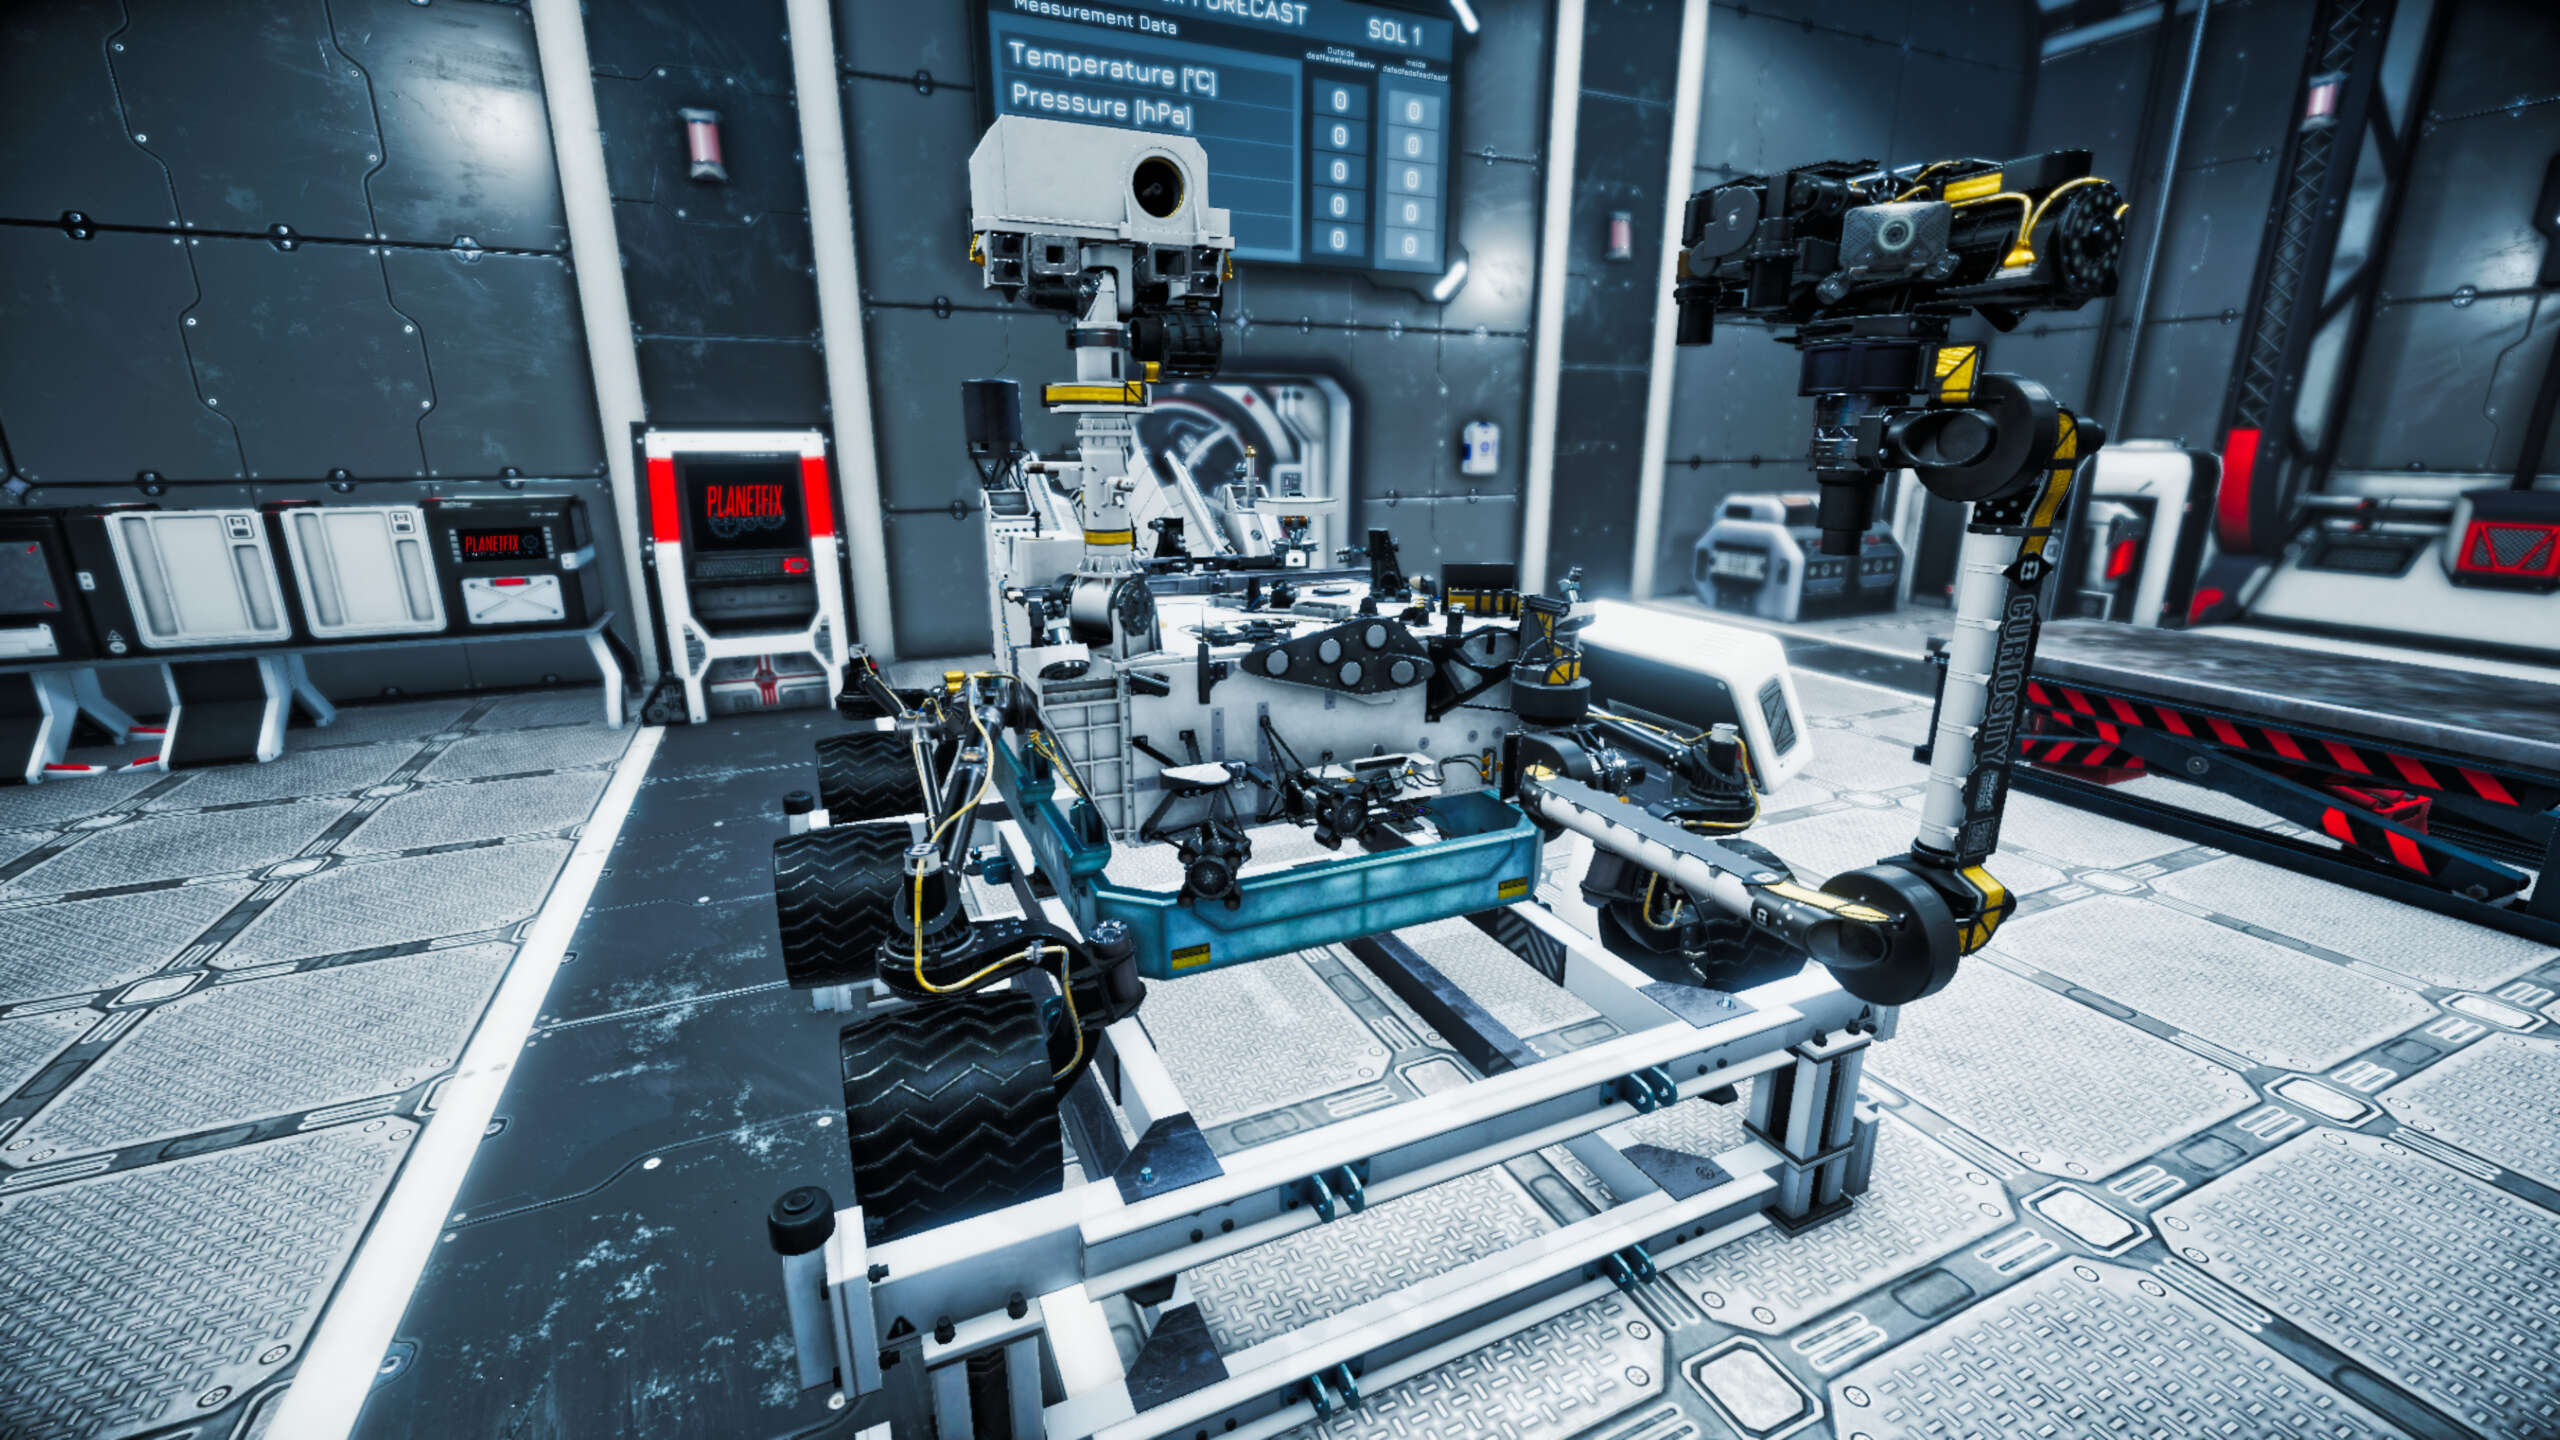 Rover Mechanic Simulator Has Released On PC Bringing Science And Play Together